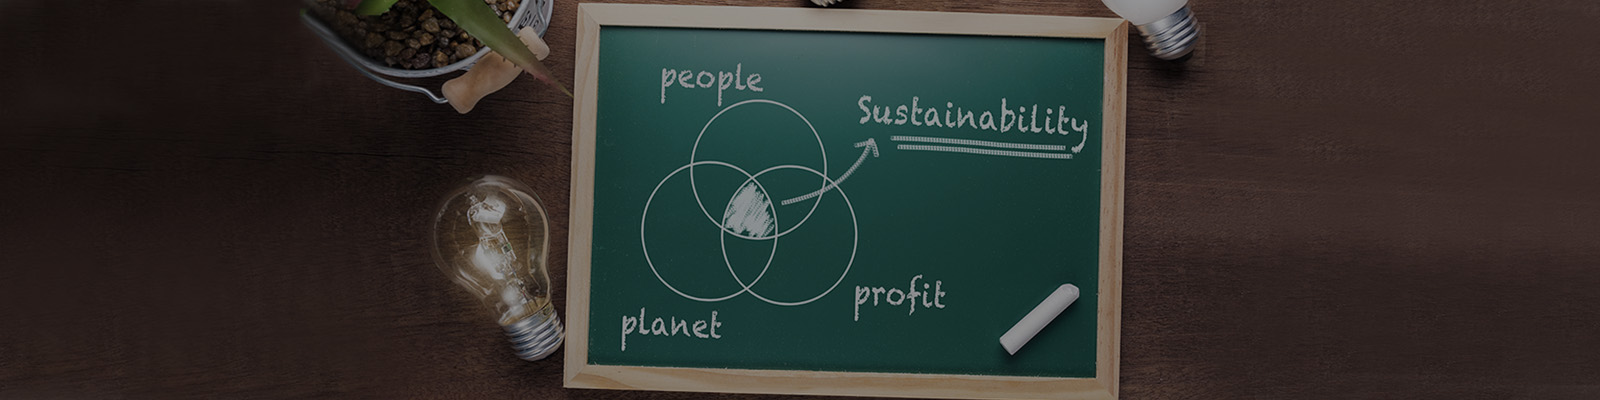 image of a chalkboard highlighting people, planet and profit = sustainability